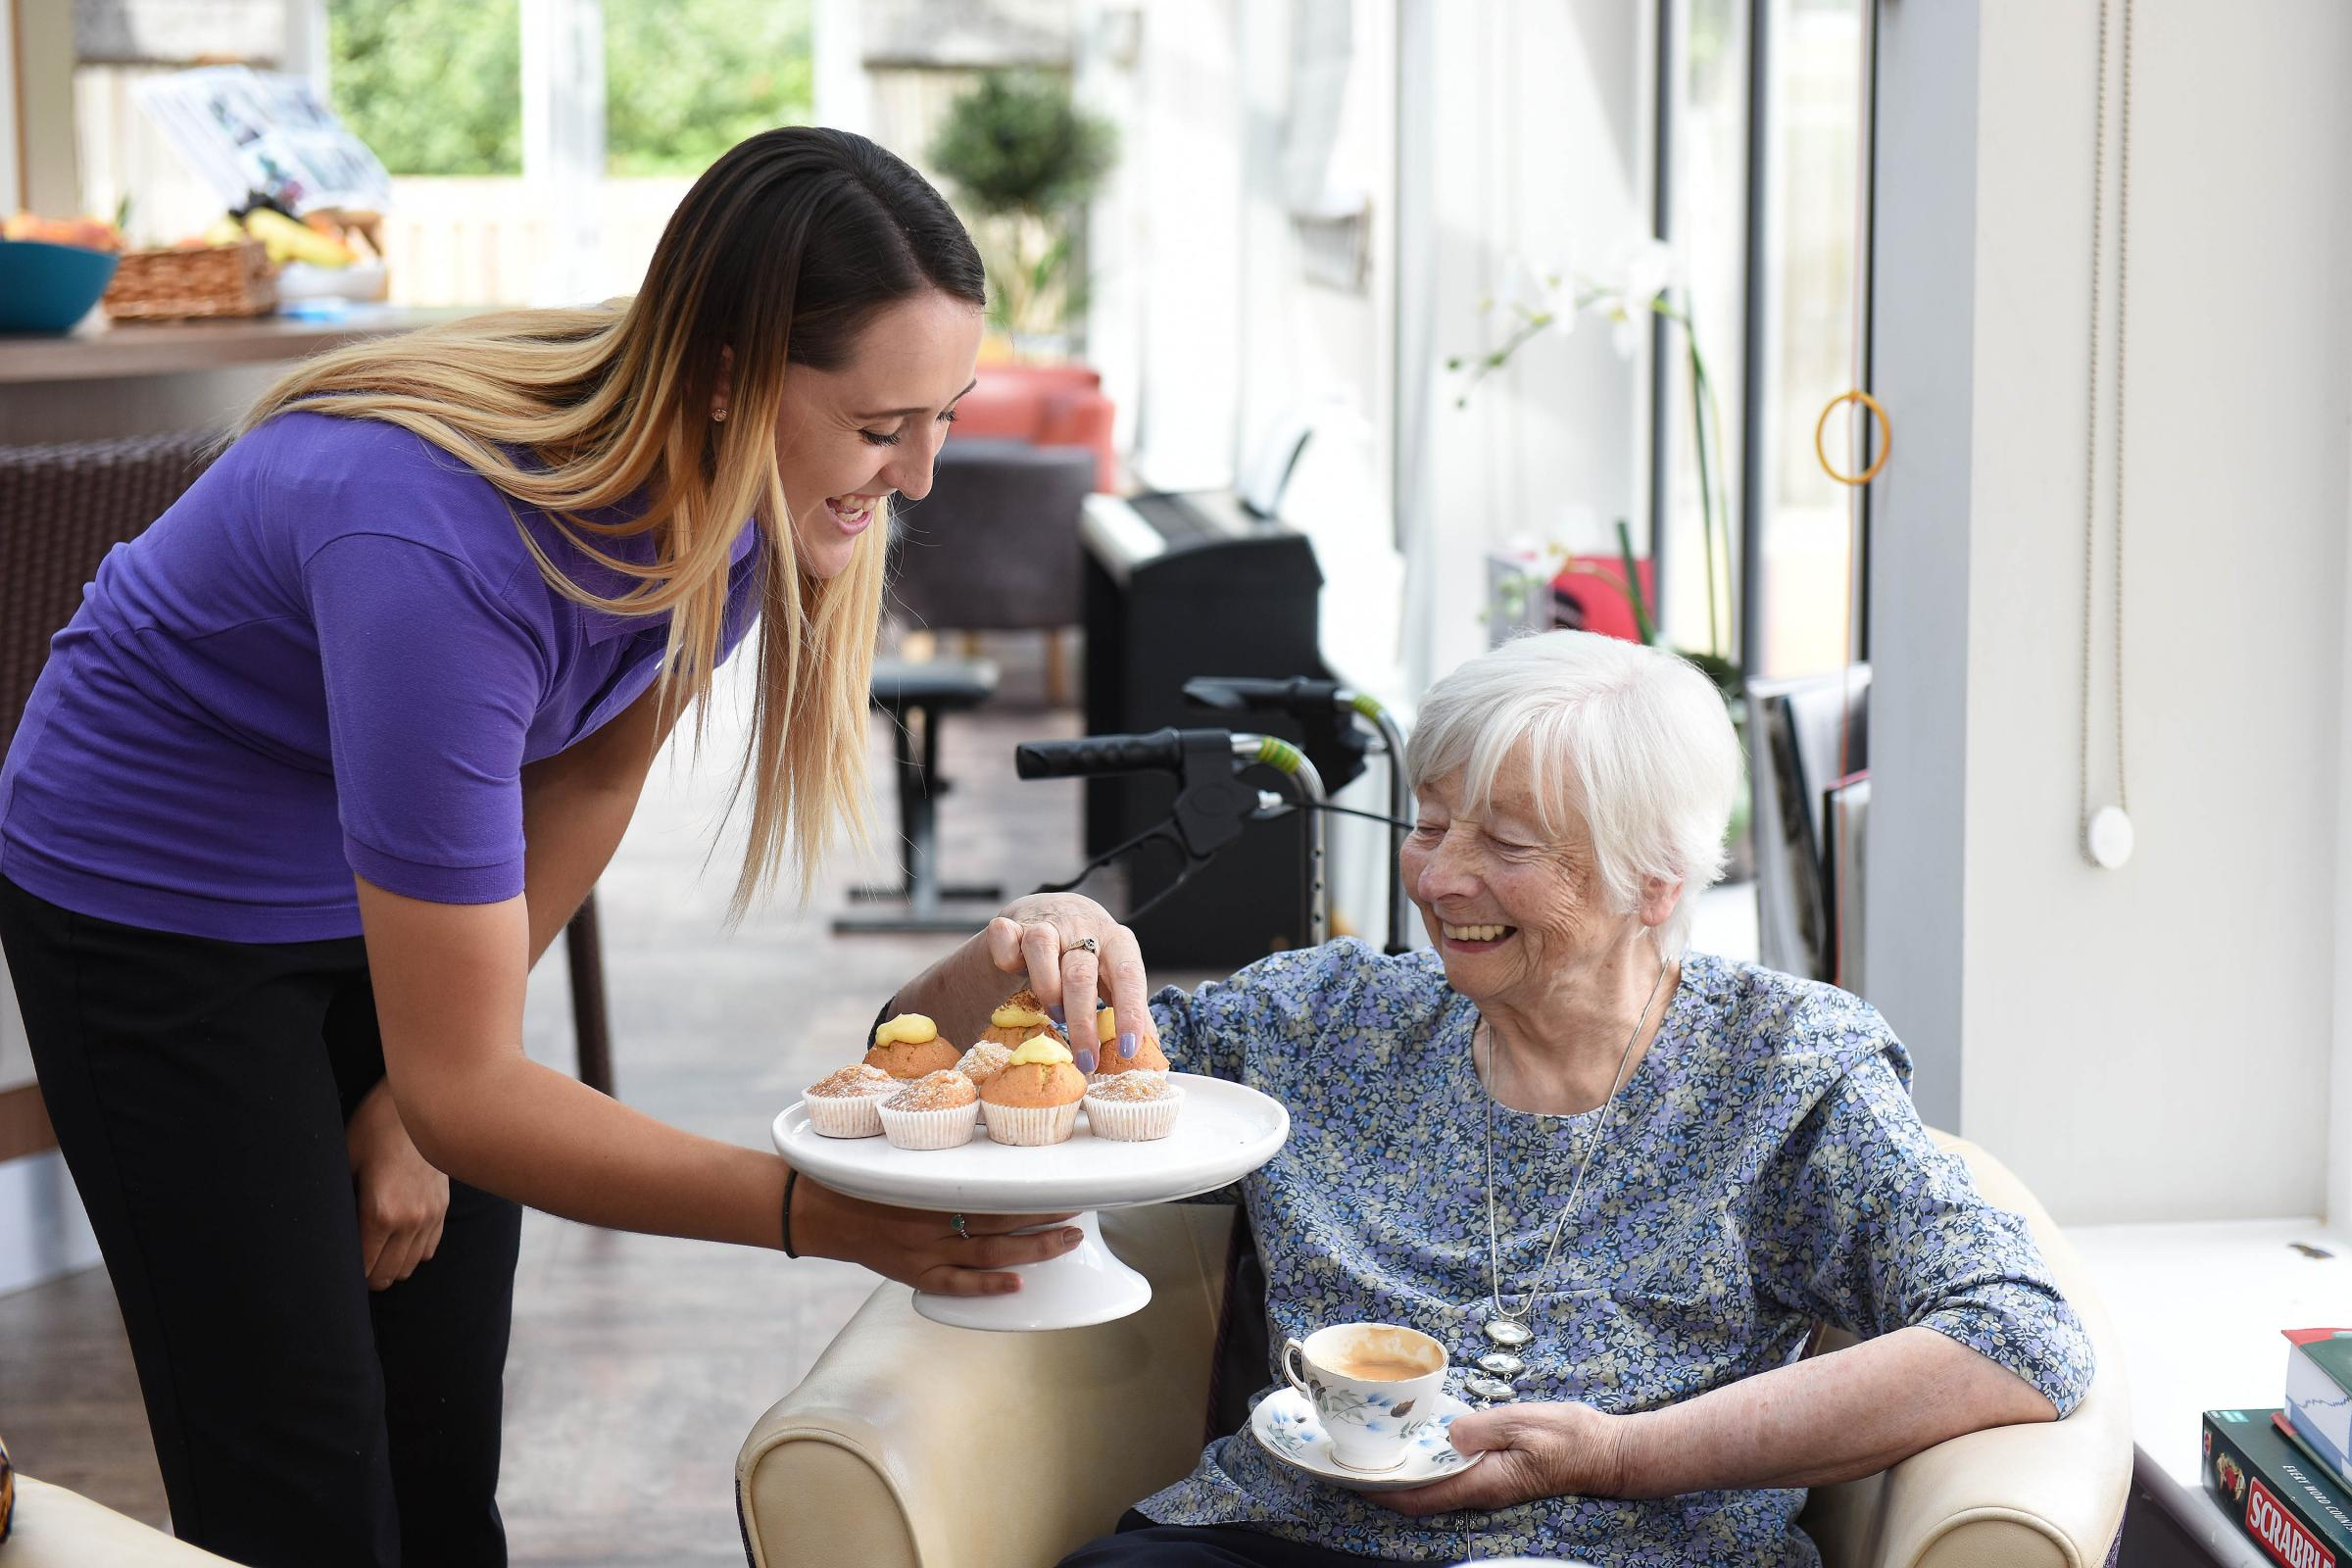 Tasty inspiration served at Kingston Vale care home